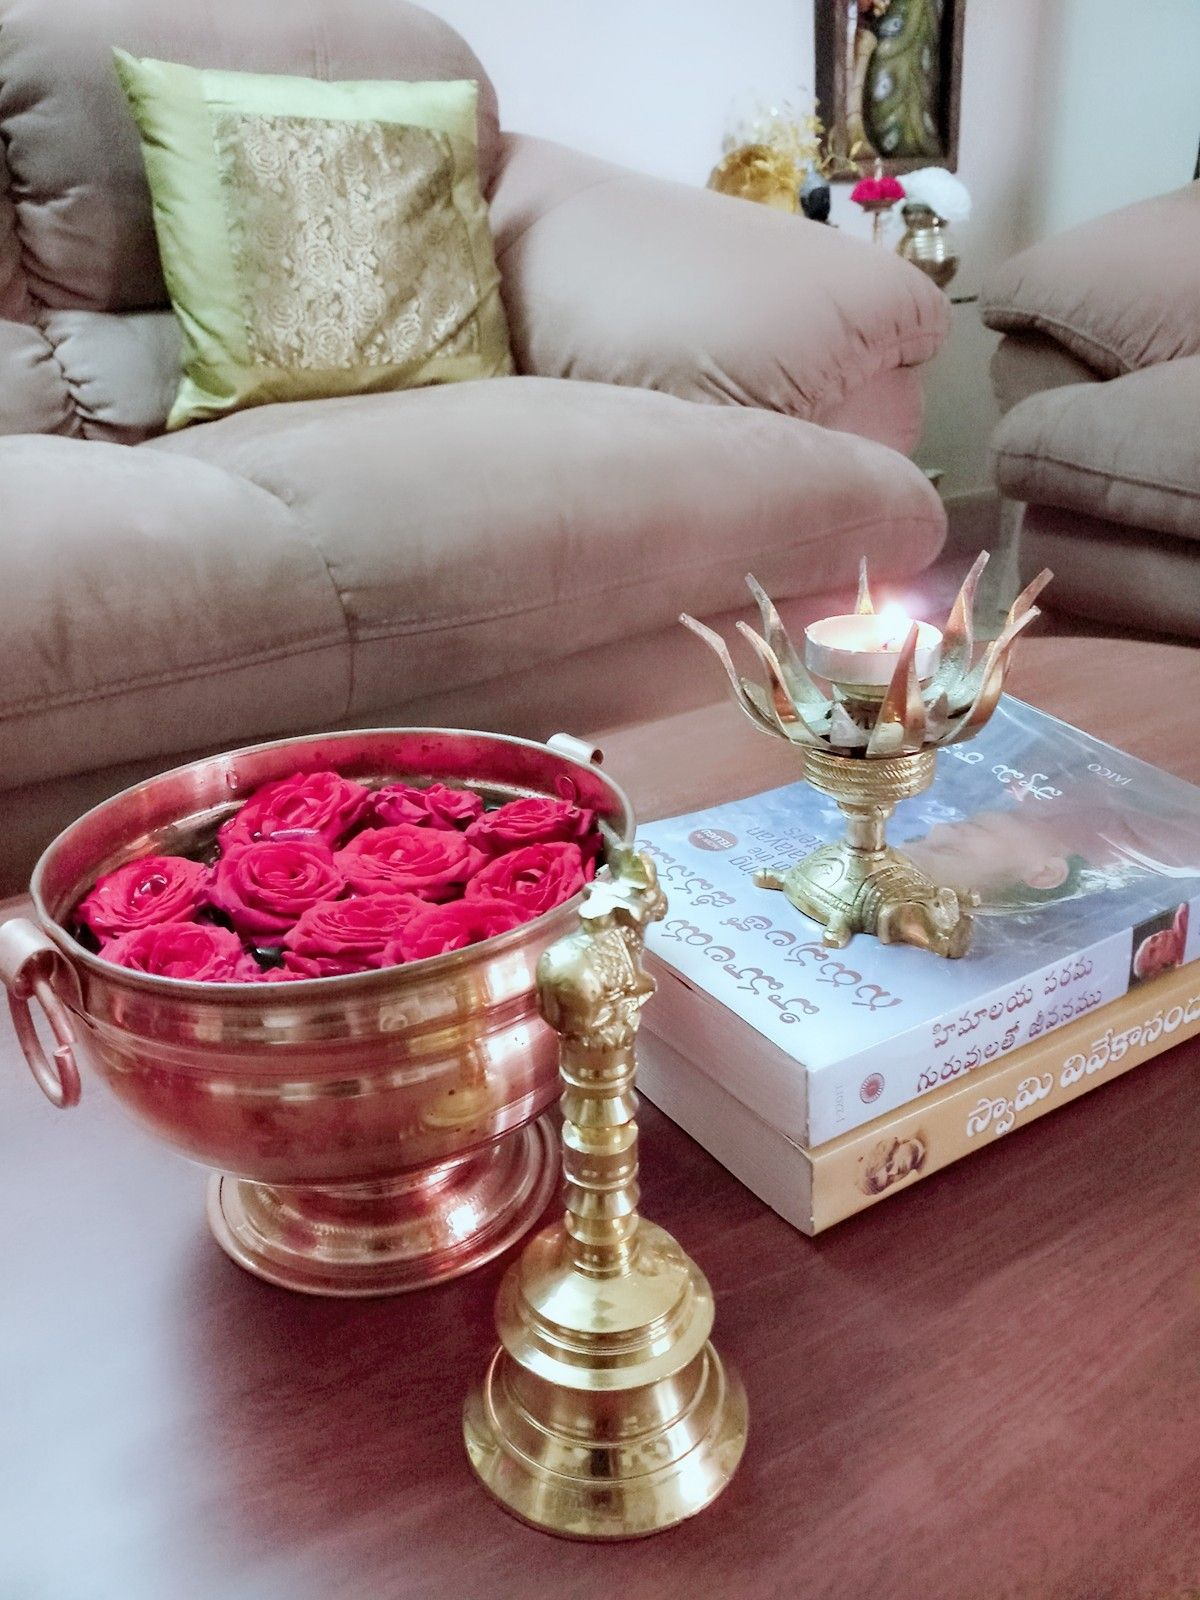 Pin By Prasanna Meruva On My Home Diwali Decorations At Home Home Decor Indian Home Decor